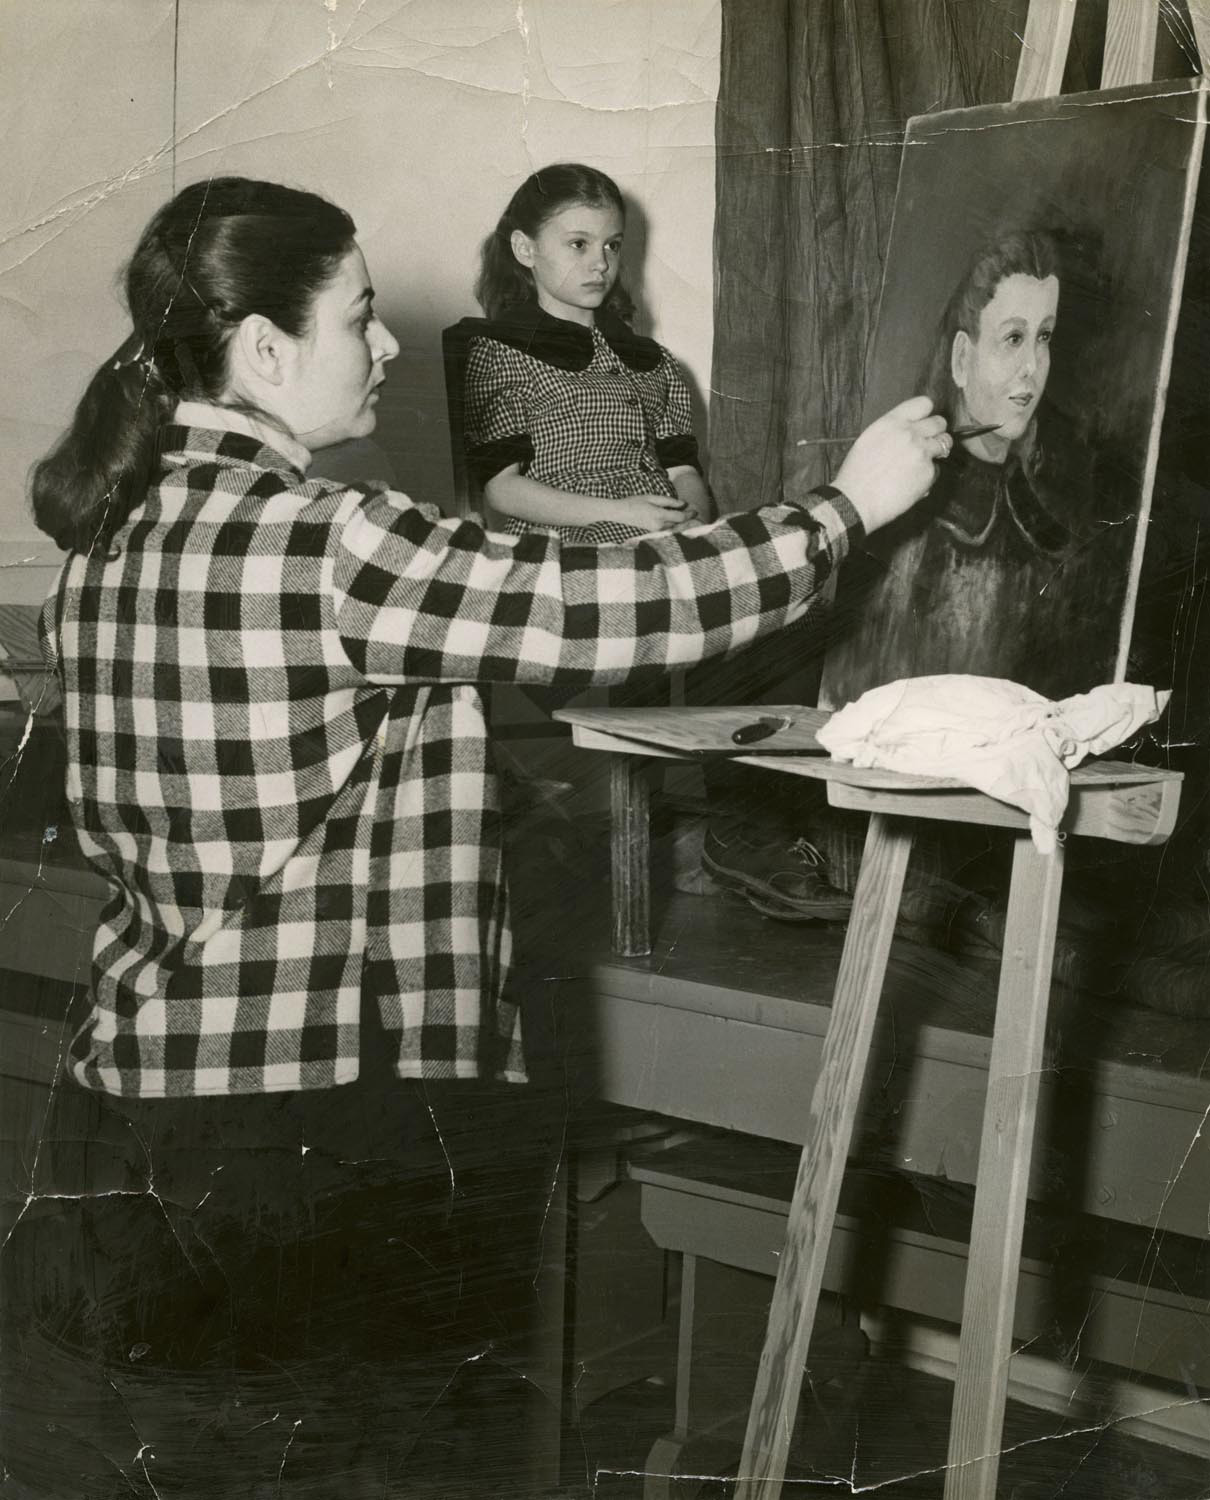 Original photograph from 1953 showing Sally Gross (the artist's grandmother) painting a portrait of her daughter Barbara Hannah (the artist's mother)